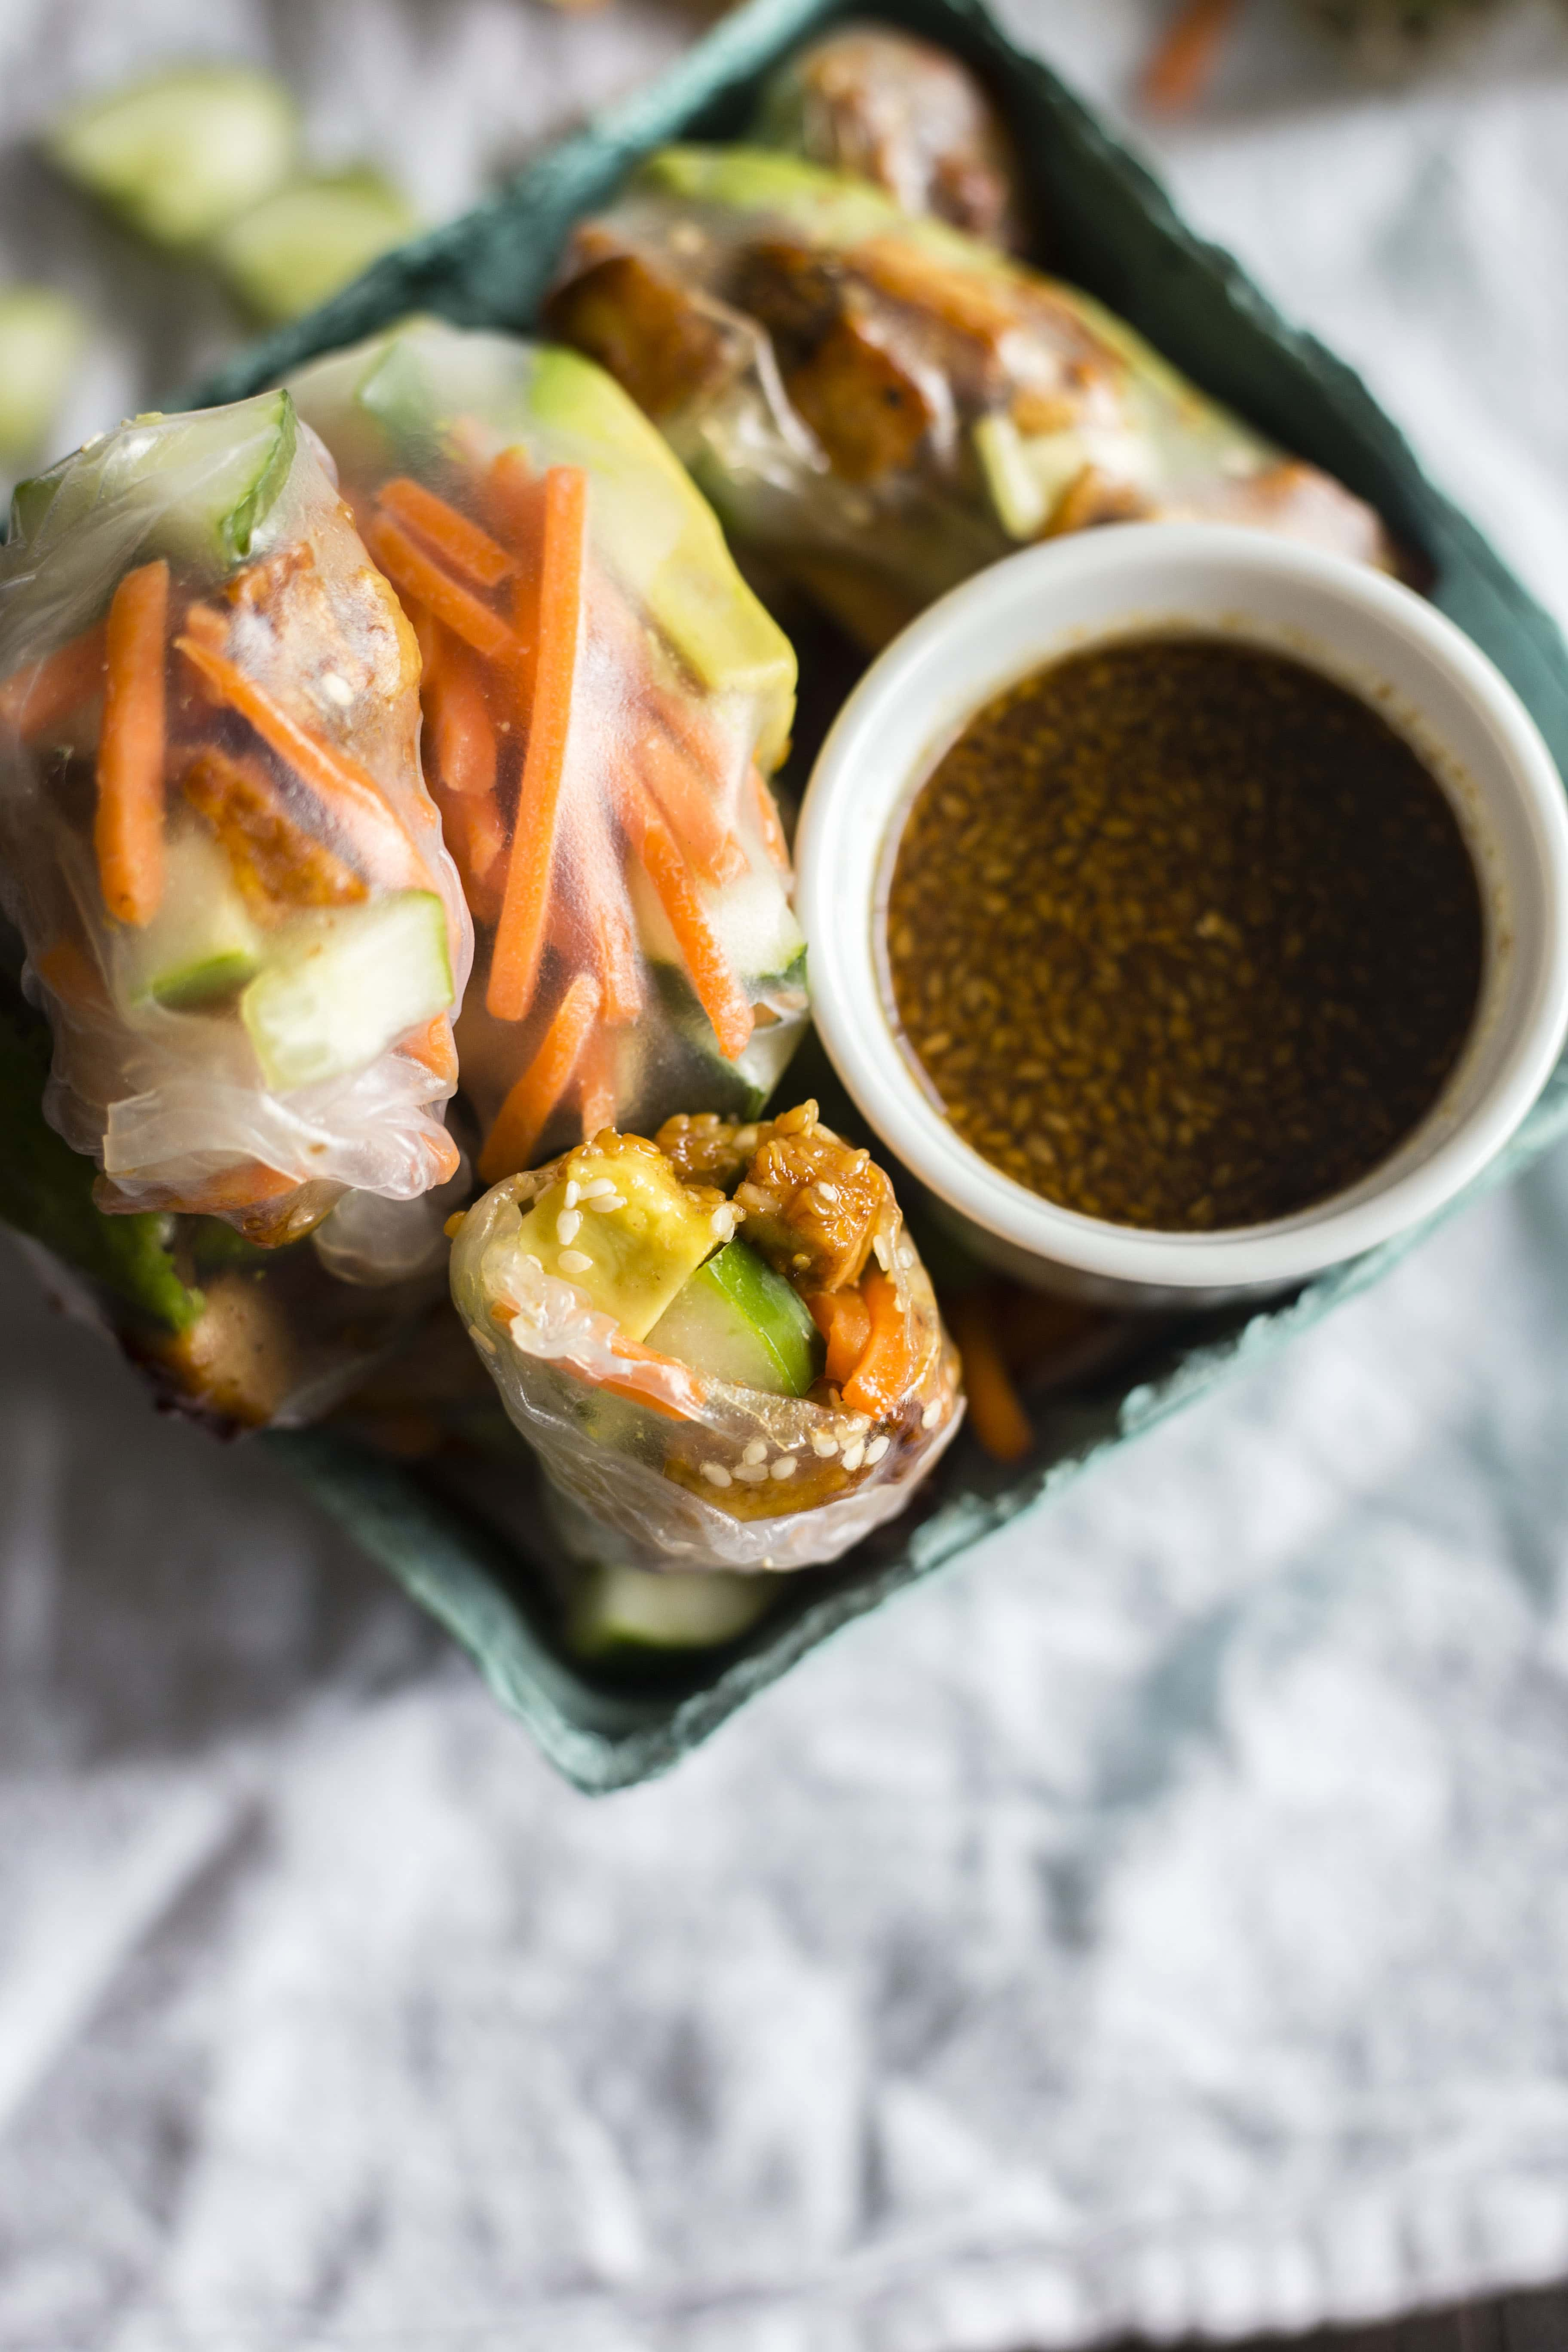 Sesame Tofu Spring Rolls | spring rolls filled with sesame oil-marinated tofu, cucumbers, carrots, and avocado! #vegan